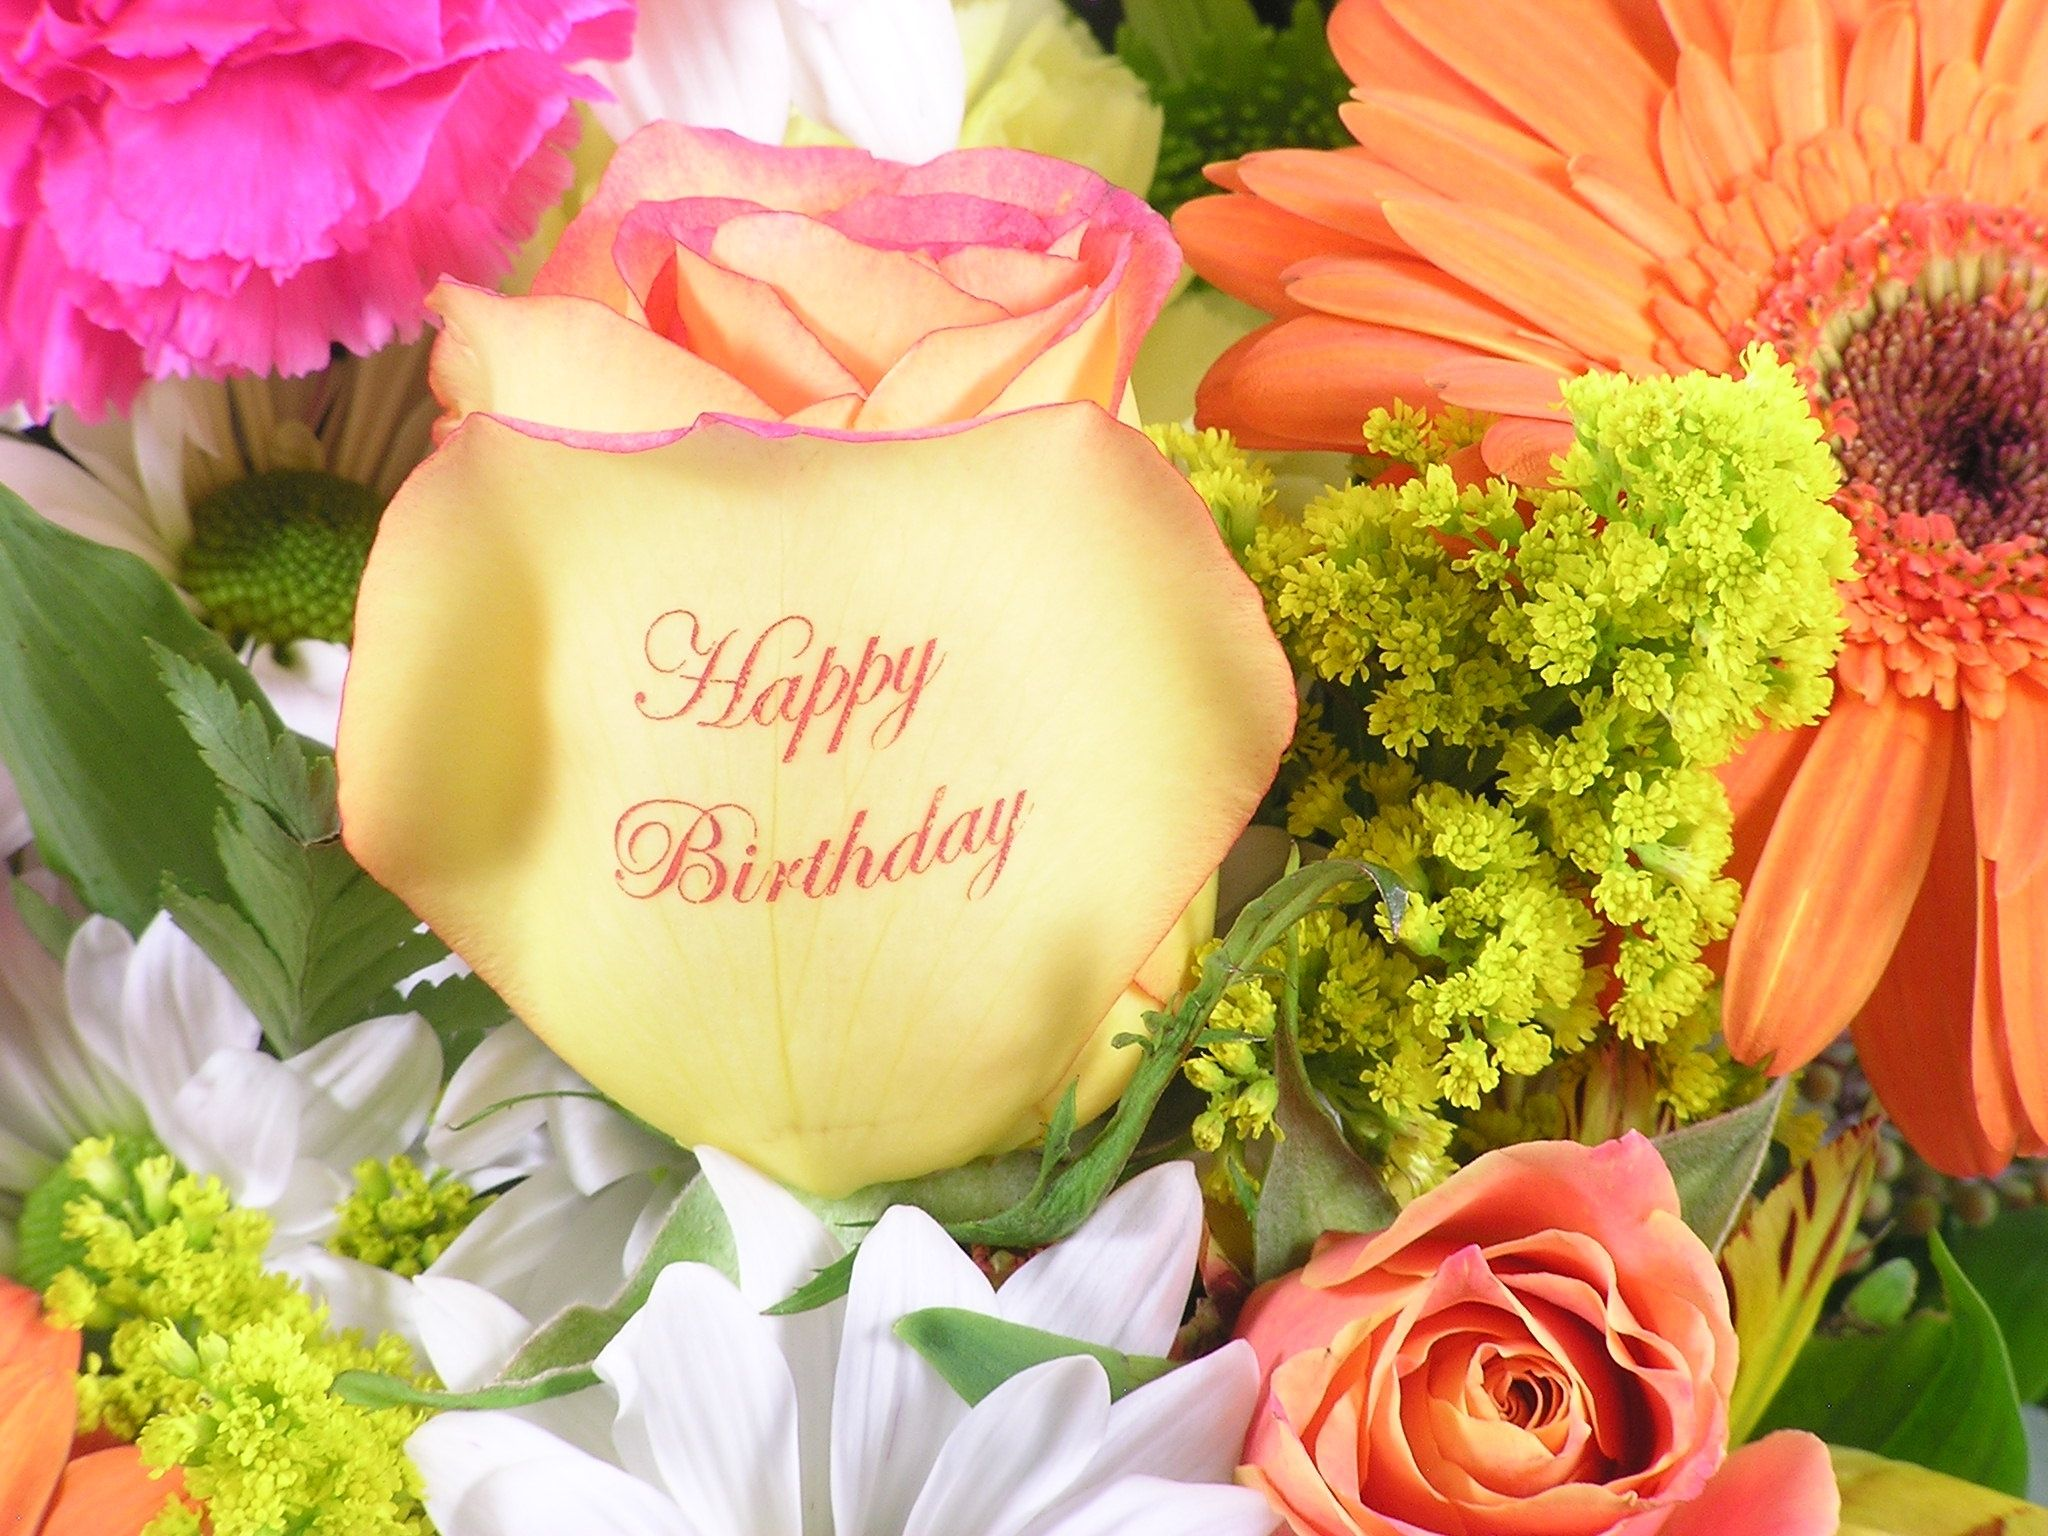 Send a special happy birthday greeting with our speaking roses a